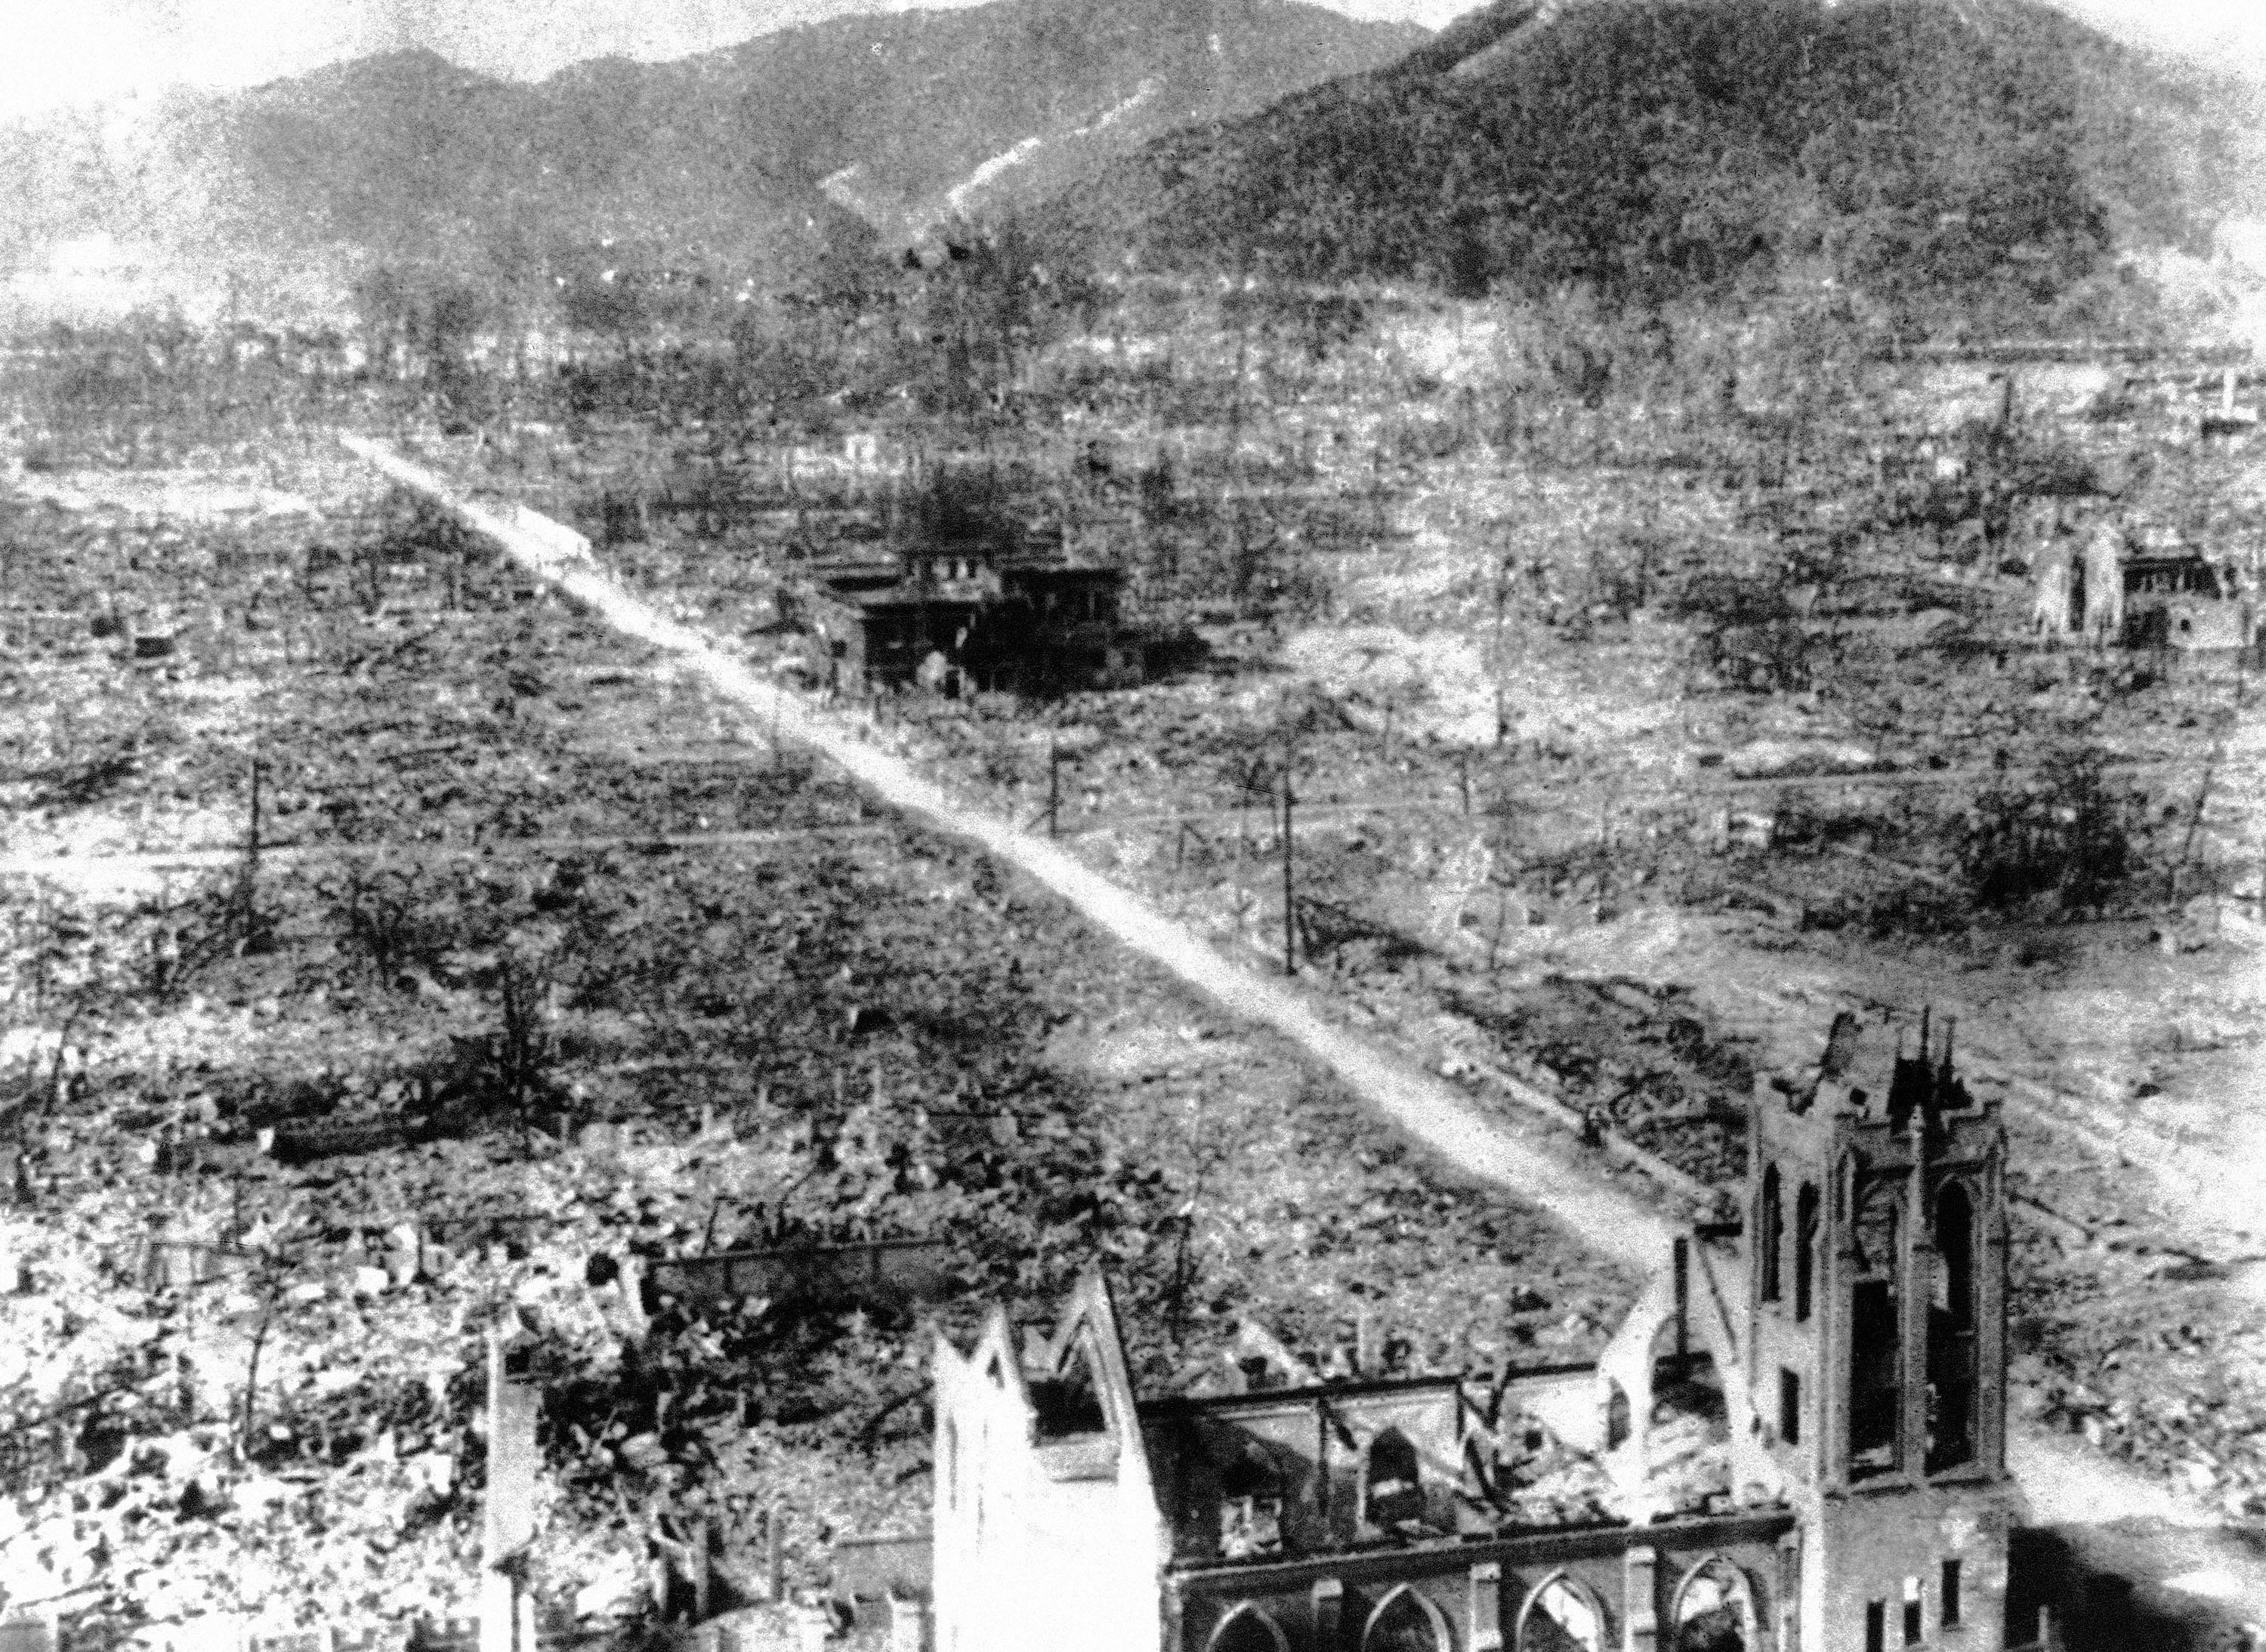 the history of hiroshima after the bombing in 1945 The atomic bombing of hiroshima and nagasaki 70 years ago, is one of the  a  social history of us censorship in the aftermath of the bombings, which   photograph taken at a roman catholic church in nagasaki circa 1945.